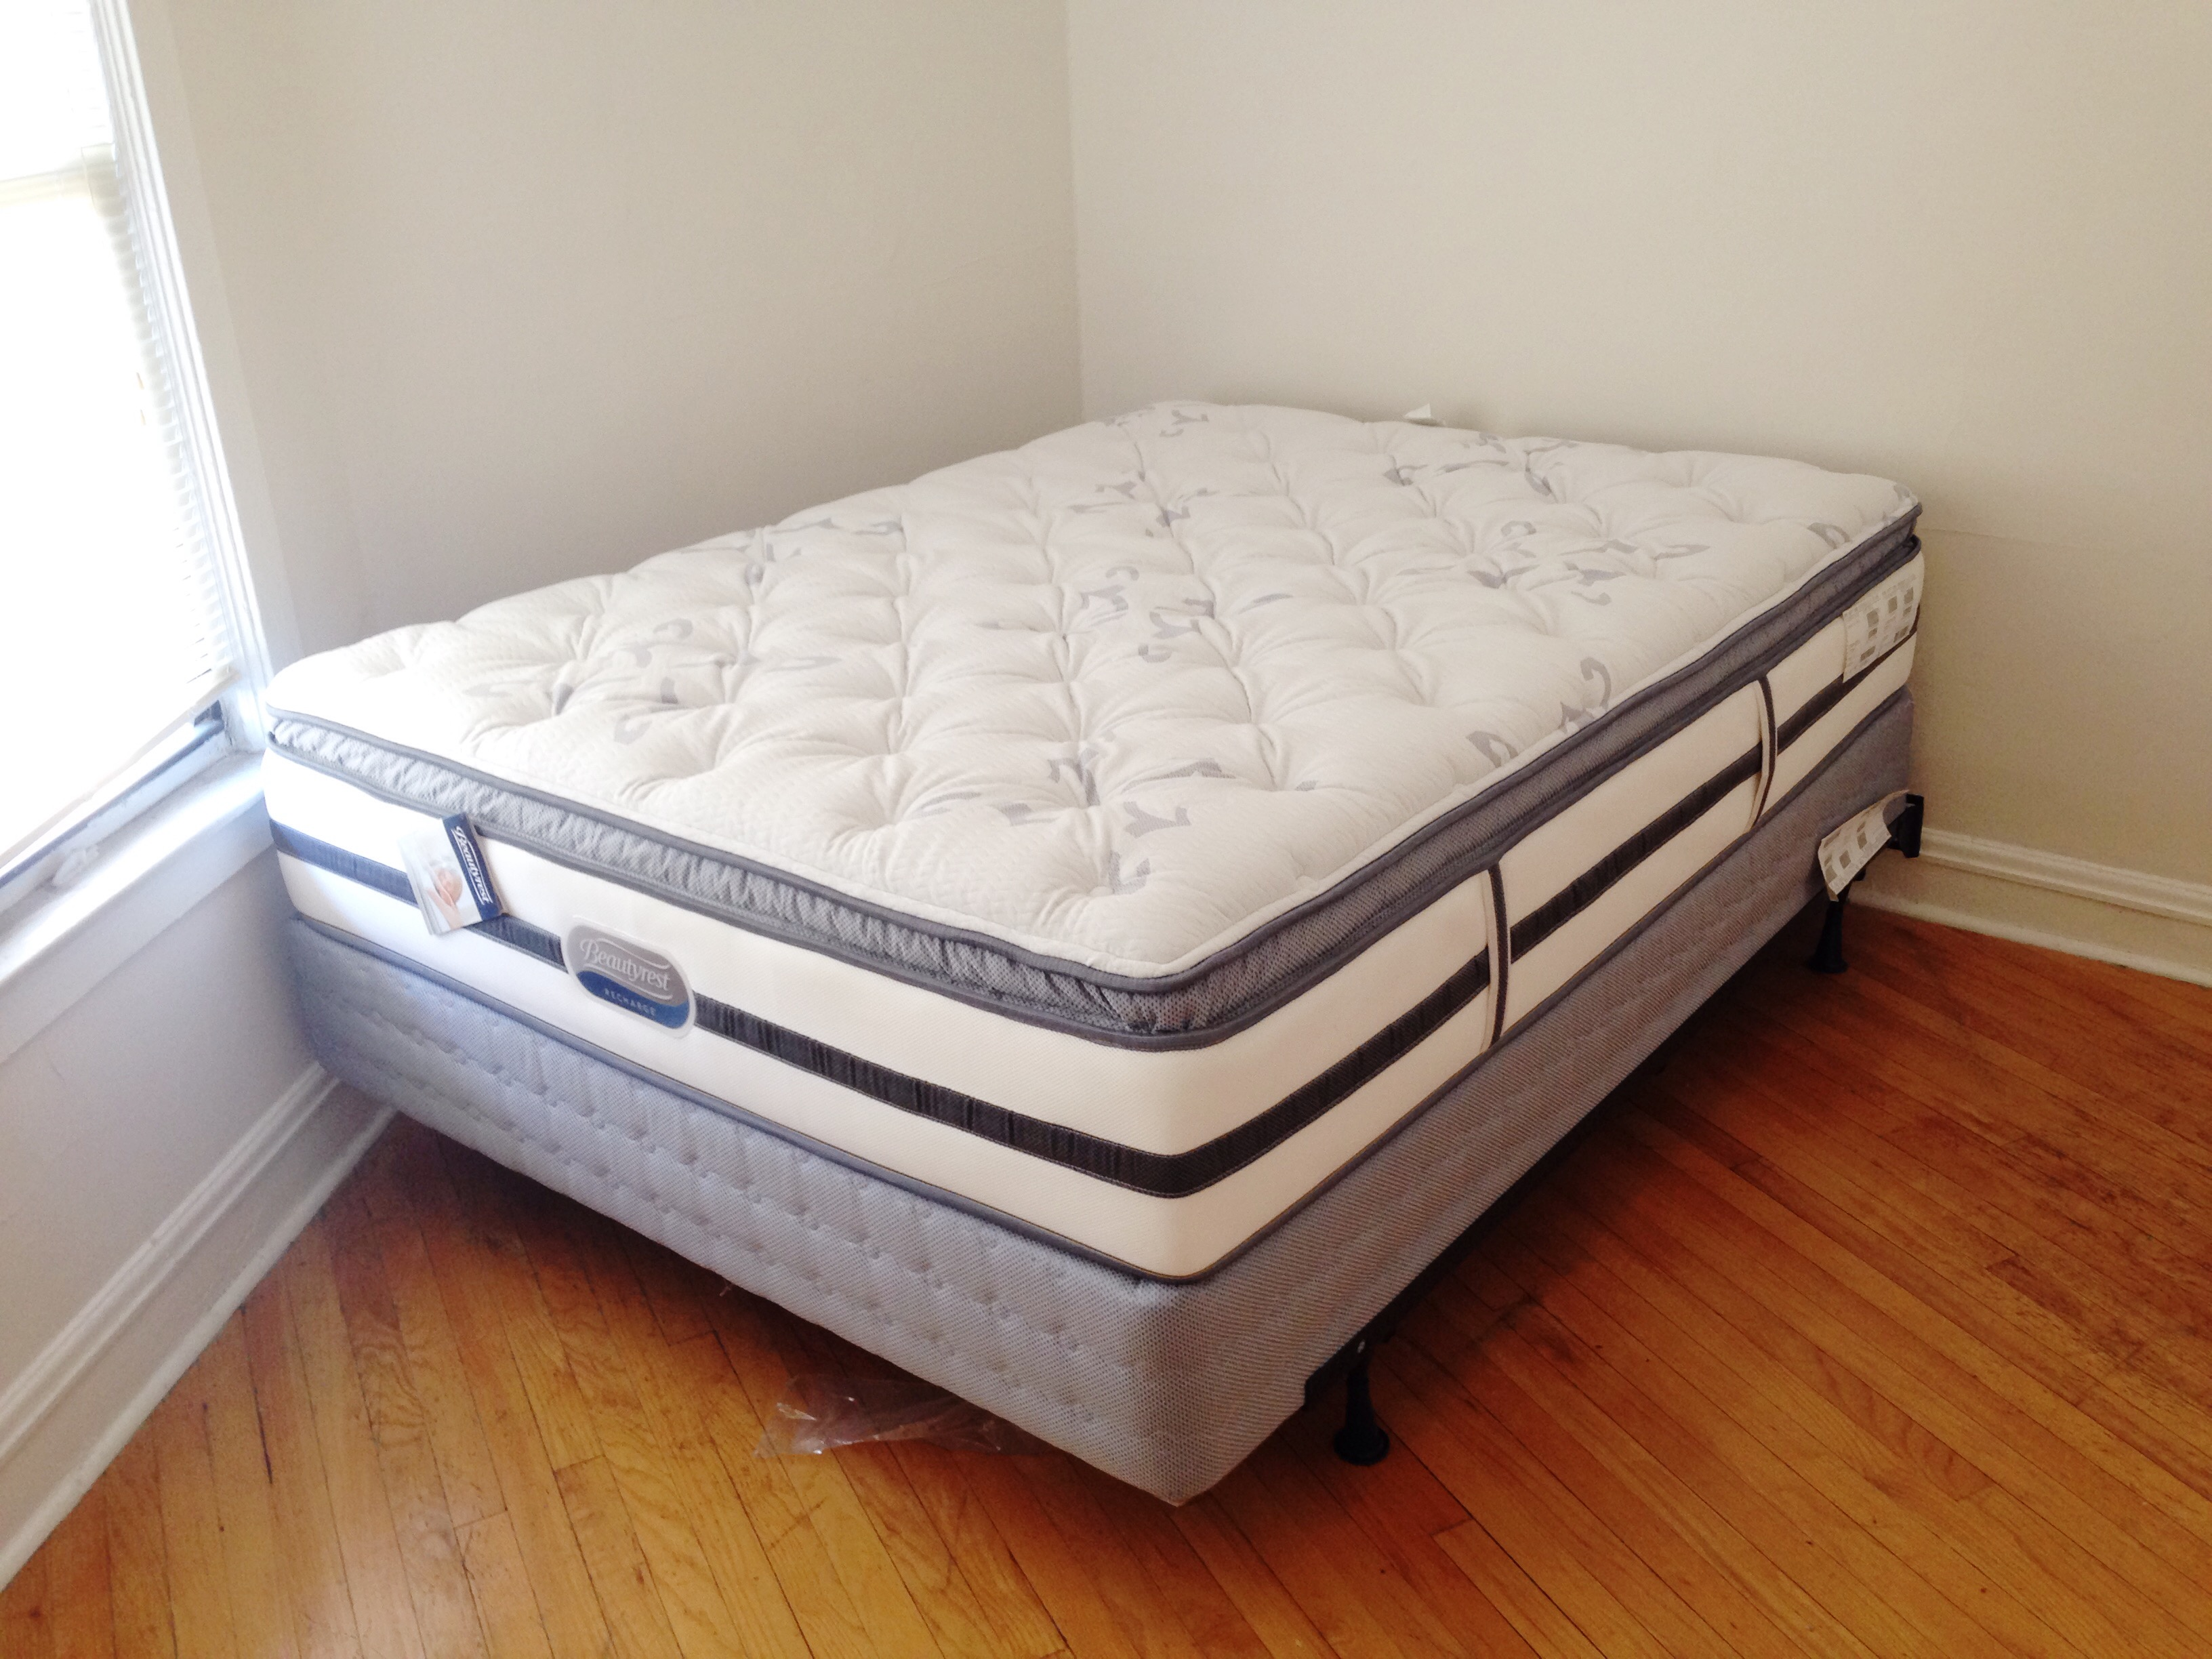 A new mattress in my new apartment.